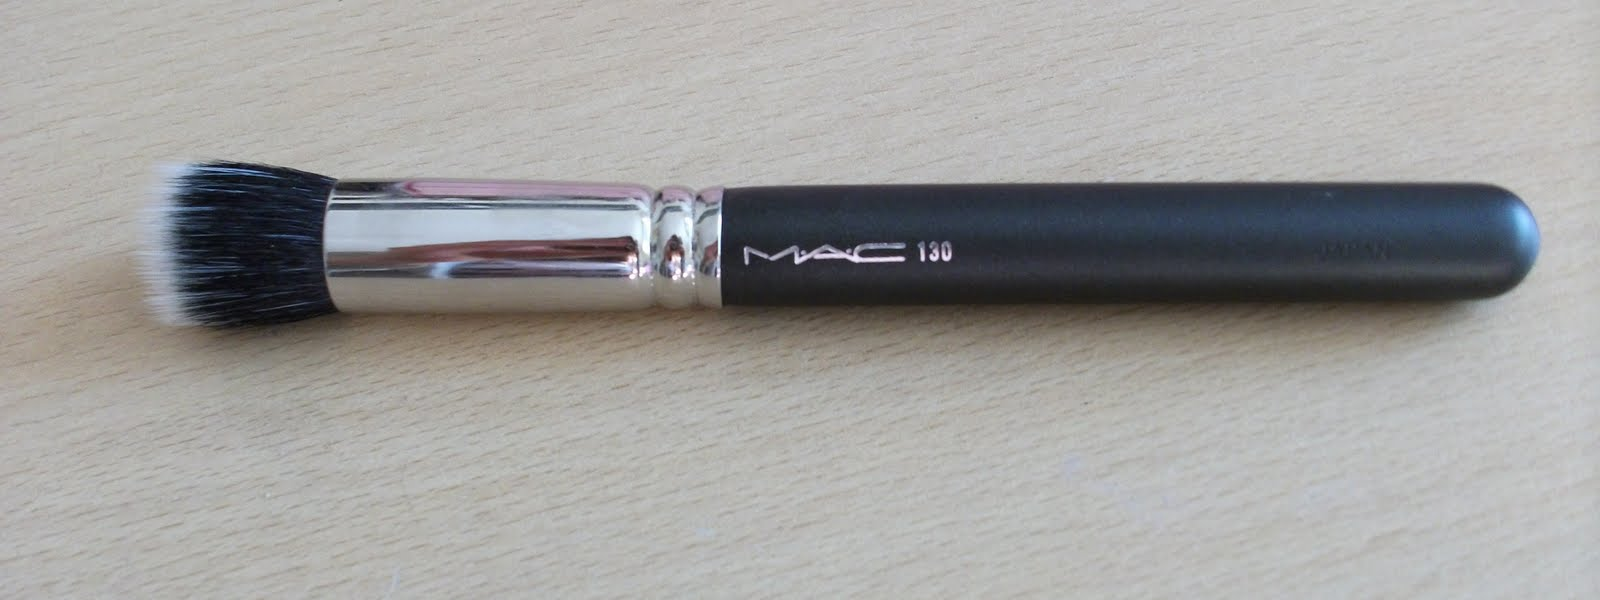 mac liquid foundation brush. i use it to apply my liquid foundation and think the key with this brush is less buff into skin really well. mac